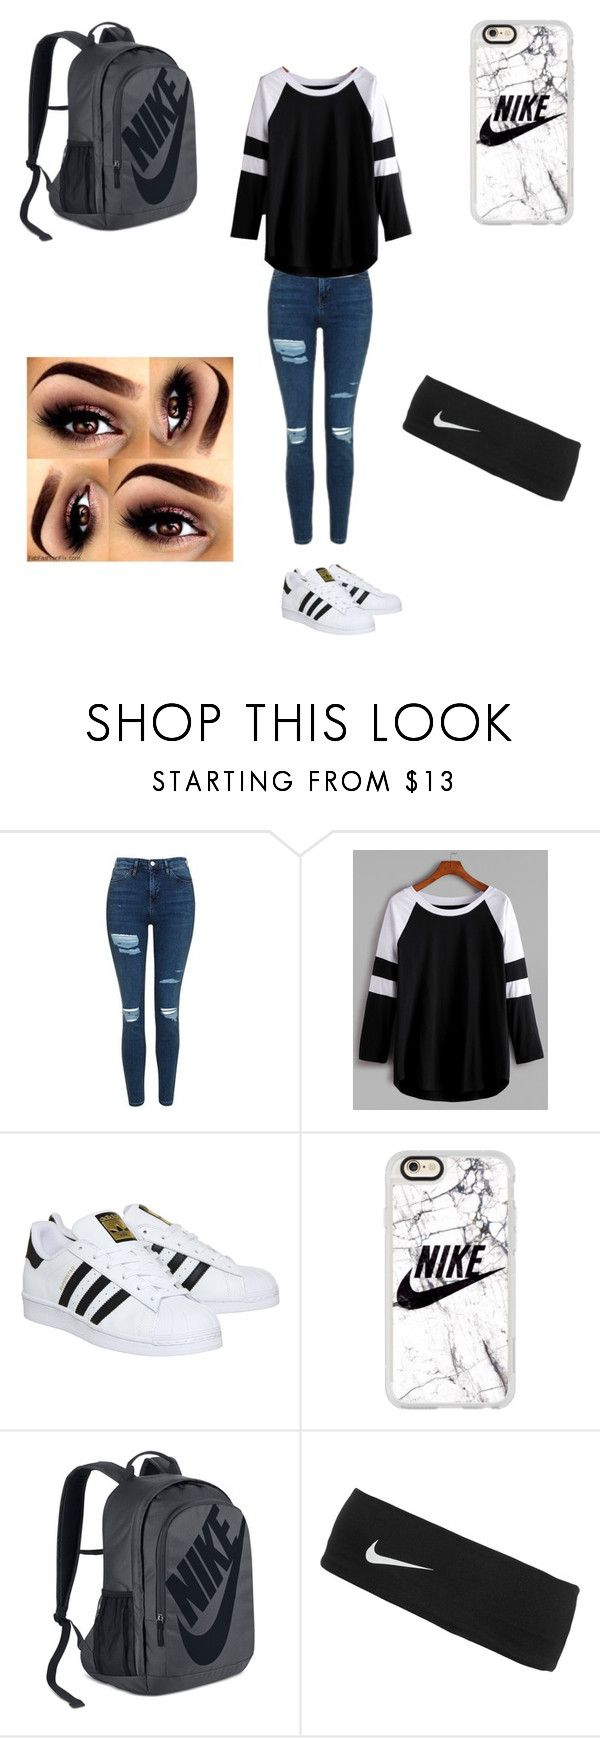 """Whateva"" by roxas-lightwood on Polyvore featuring Topshop, adidas, Casetify and NIKE"